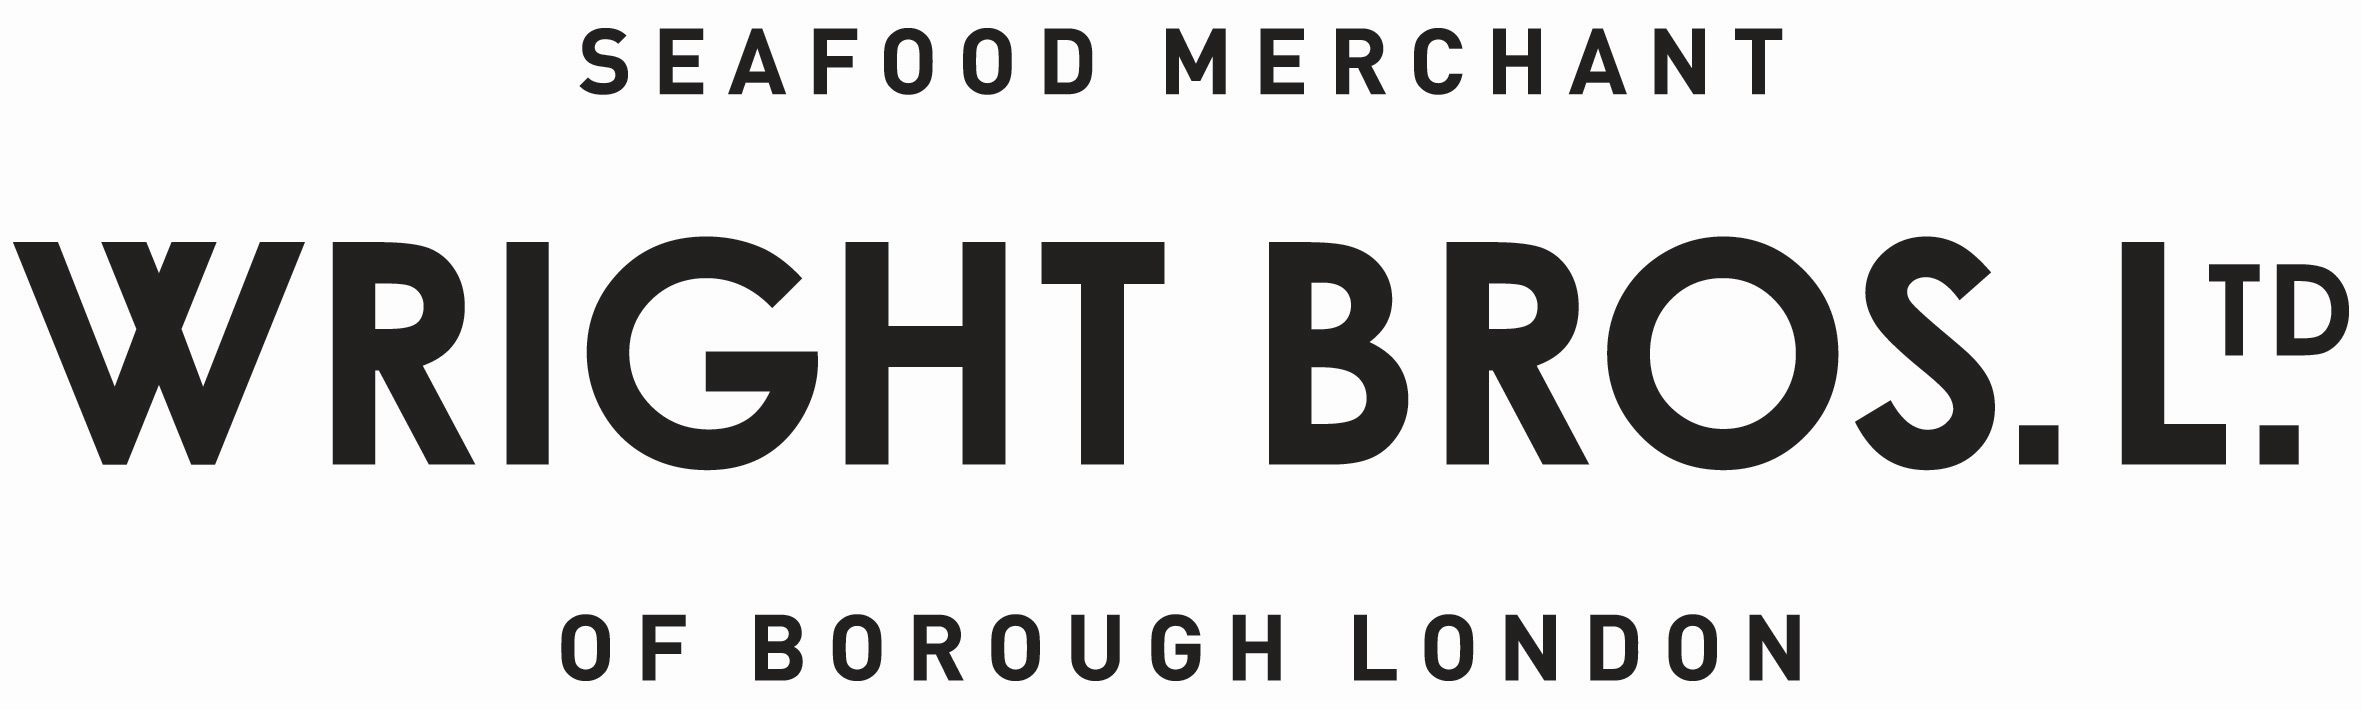 Wright_brothers_logo